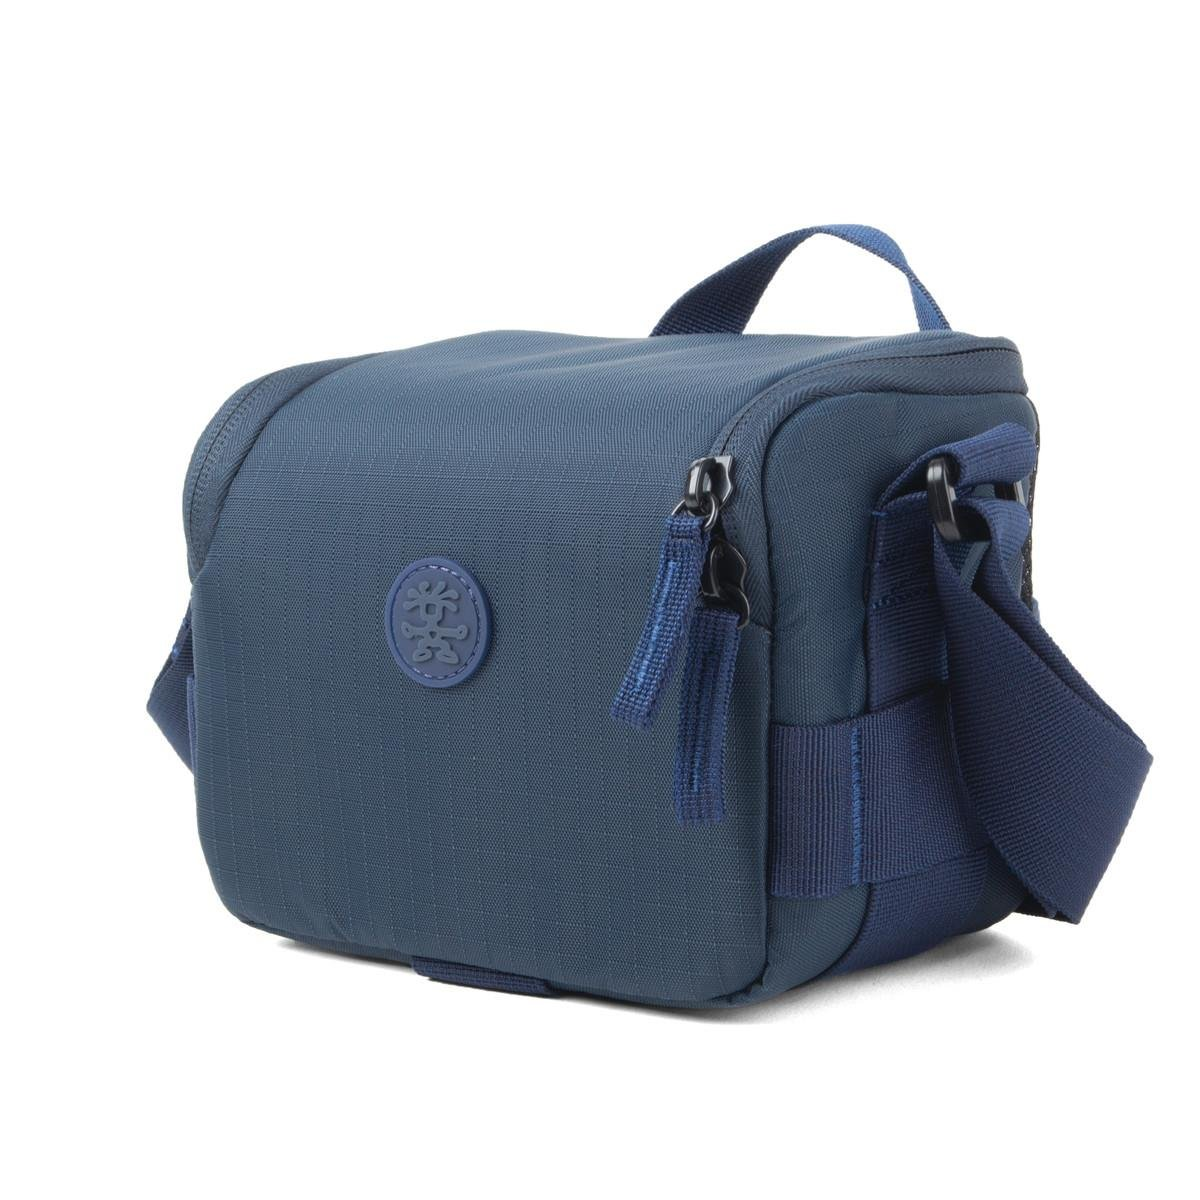 Torba na aparat CRUMPLER The Flying Duck S